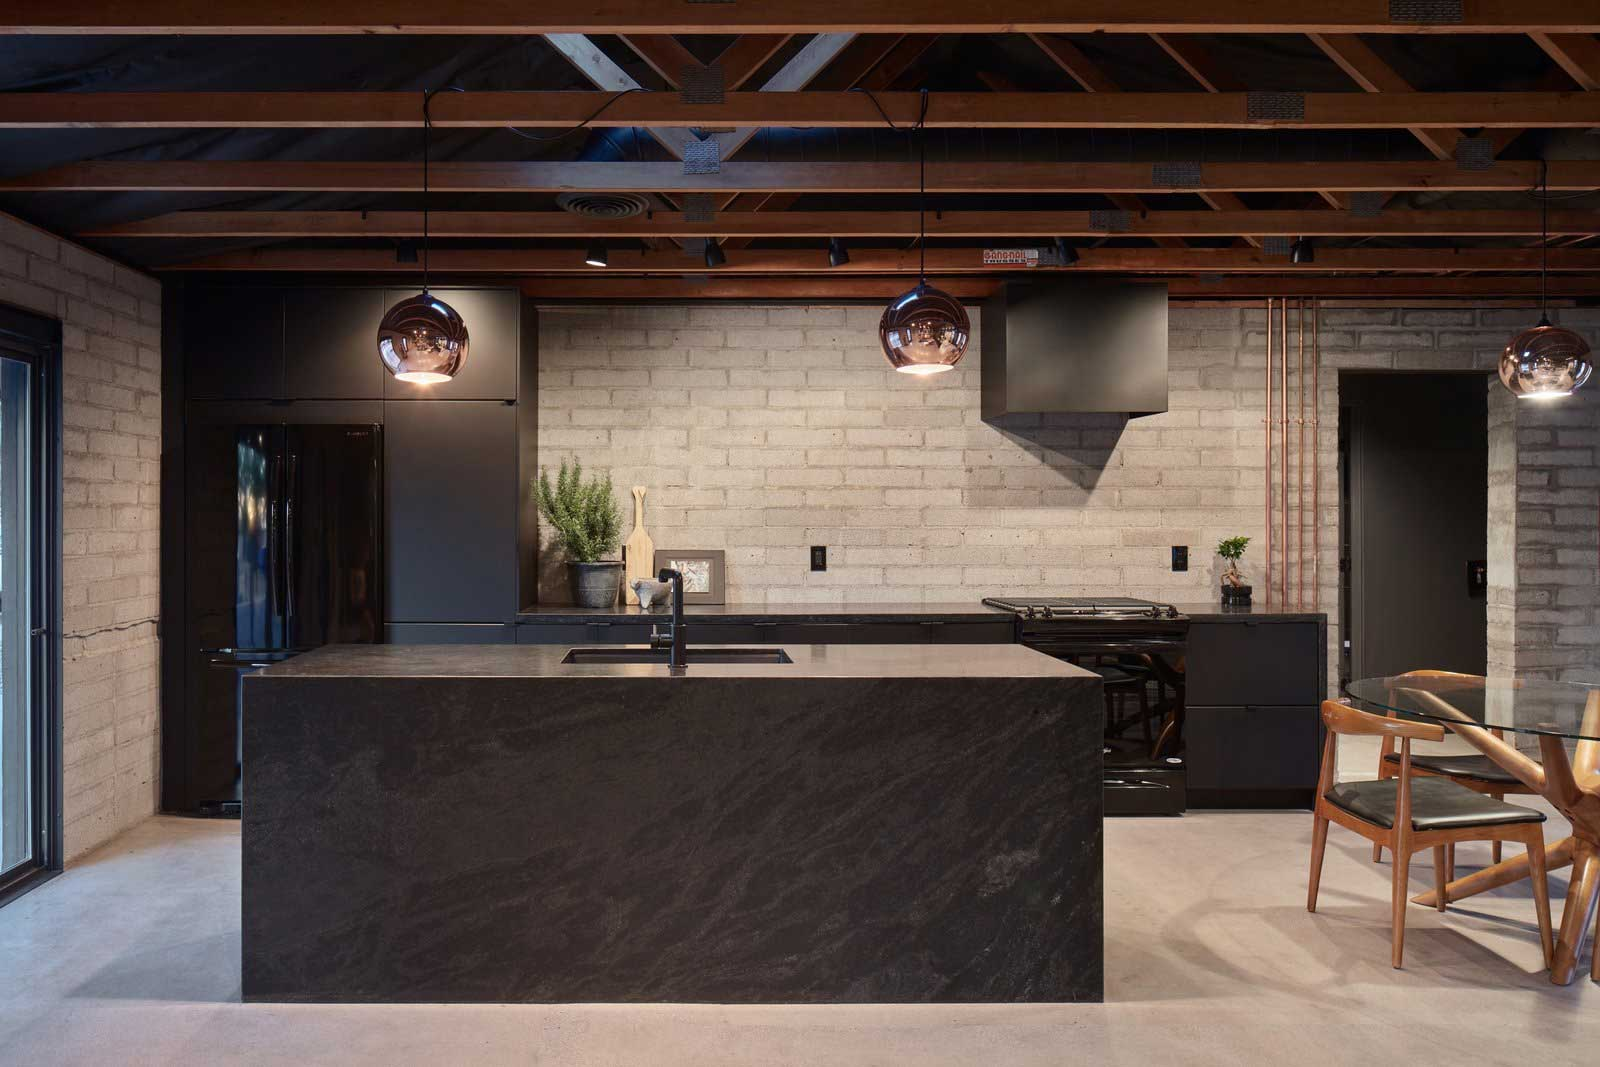 Traum-Loft: The Black House The-Black-House-Airbnb_06